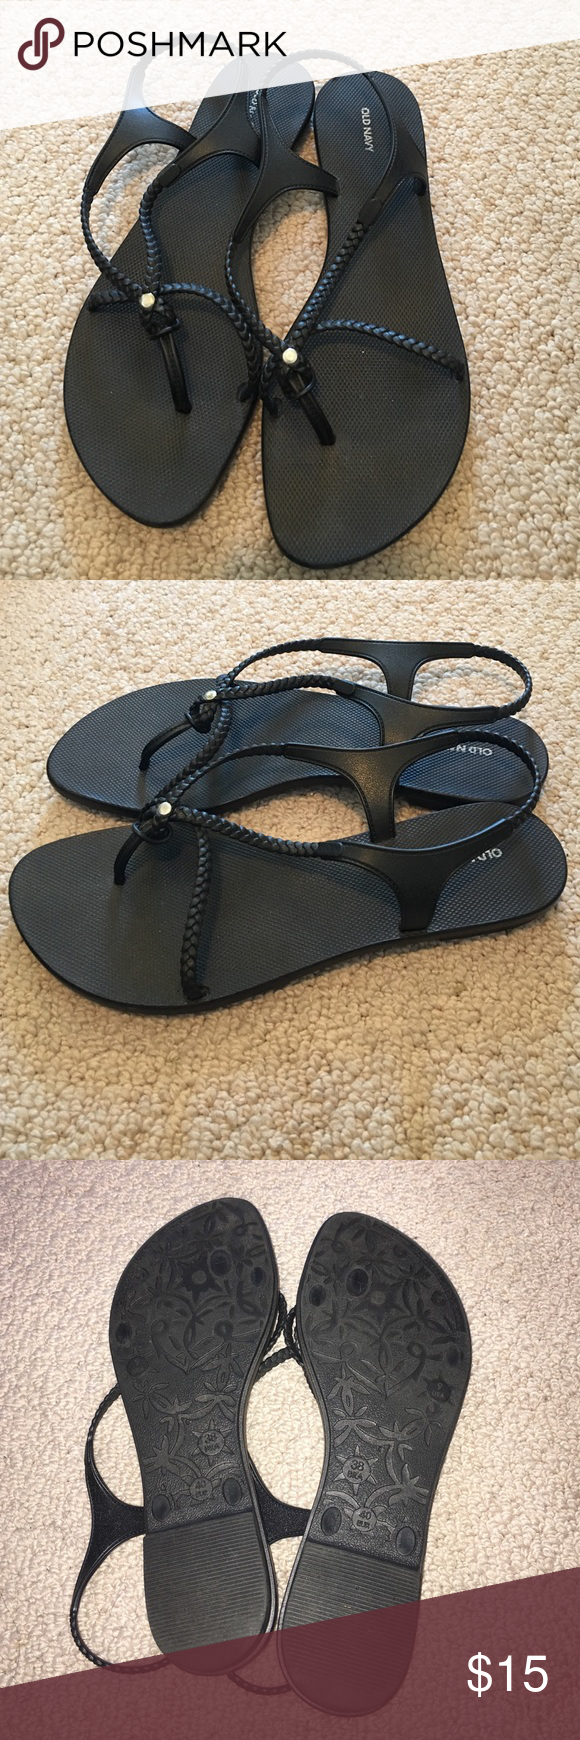 ✨ Old Navy rubber sandals ✨ | Rubber